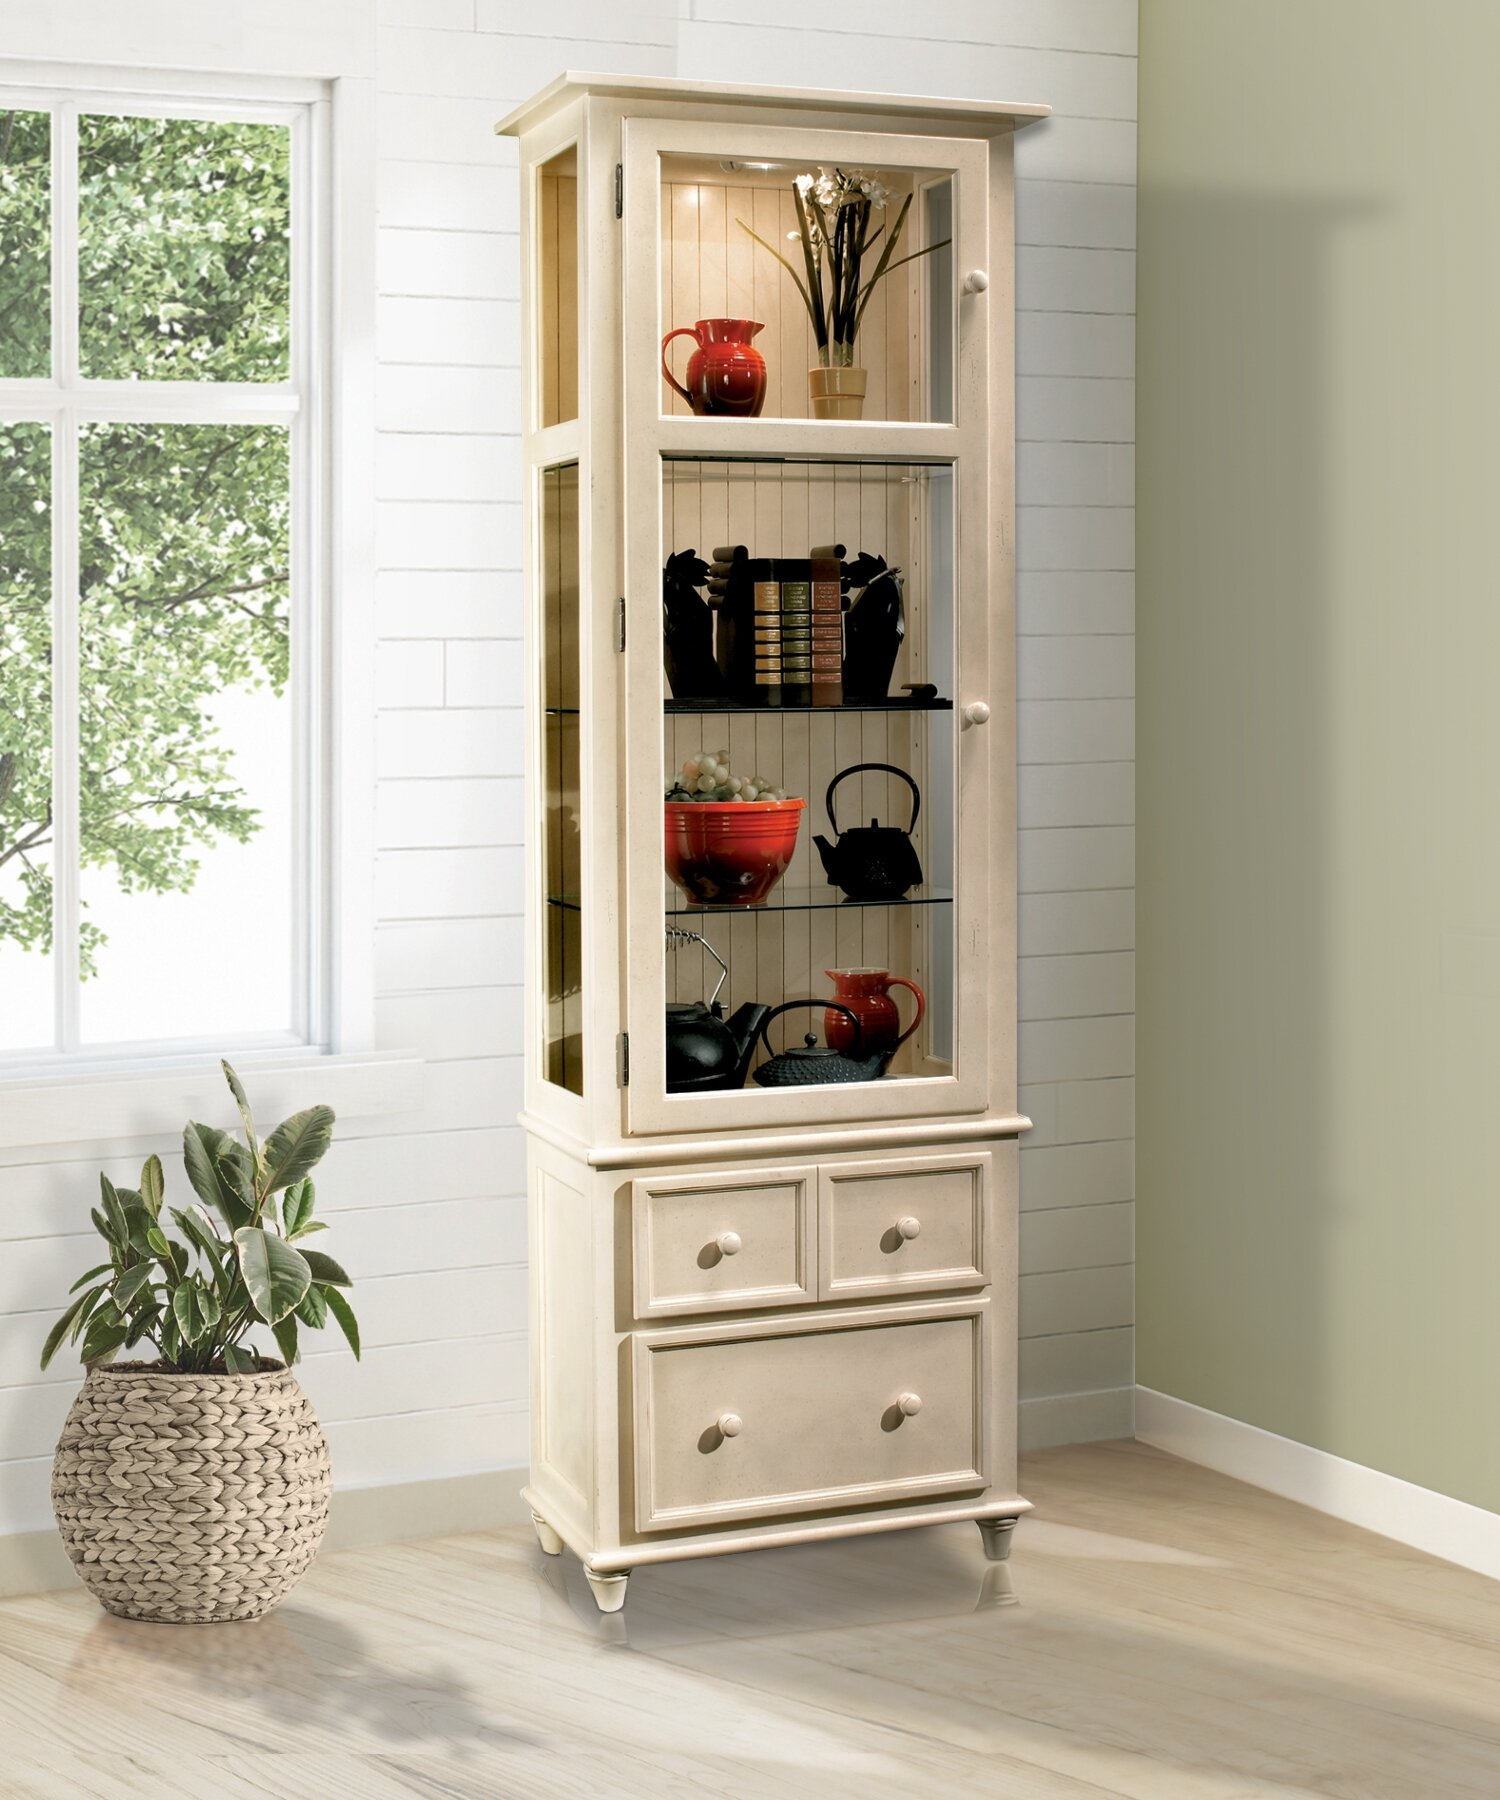 Darby Home Co Shelia Lighted China Cabinet Reviews Wayfair